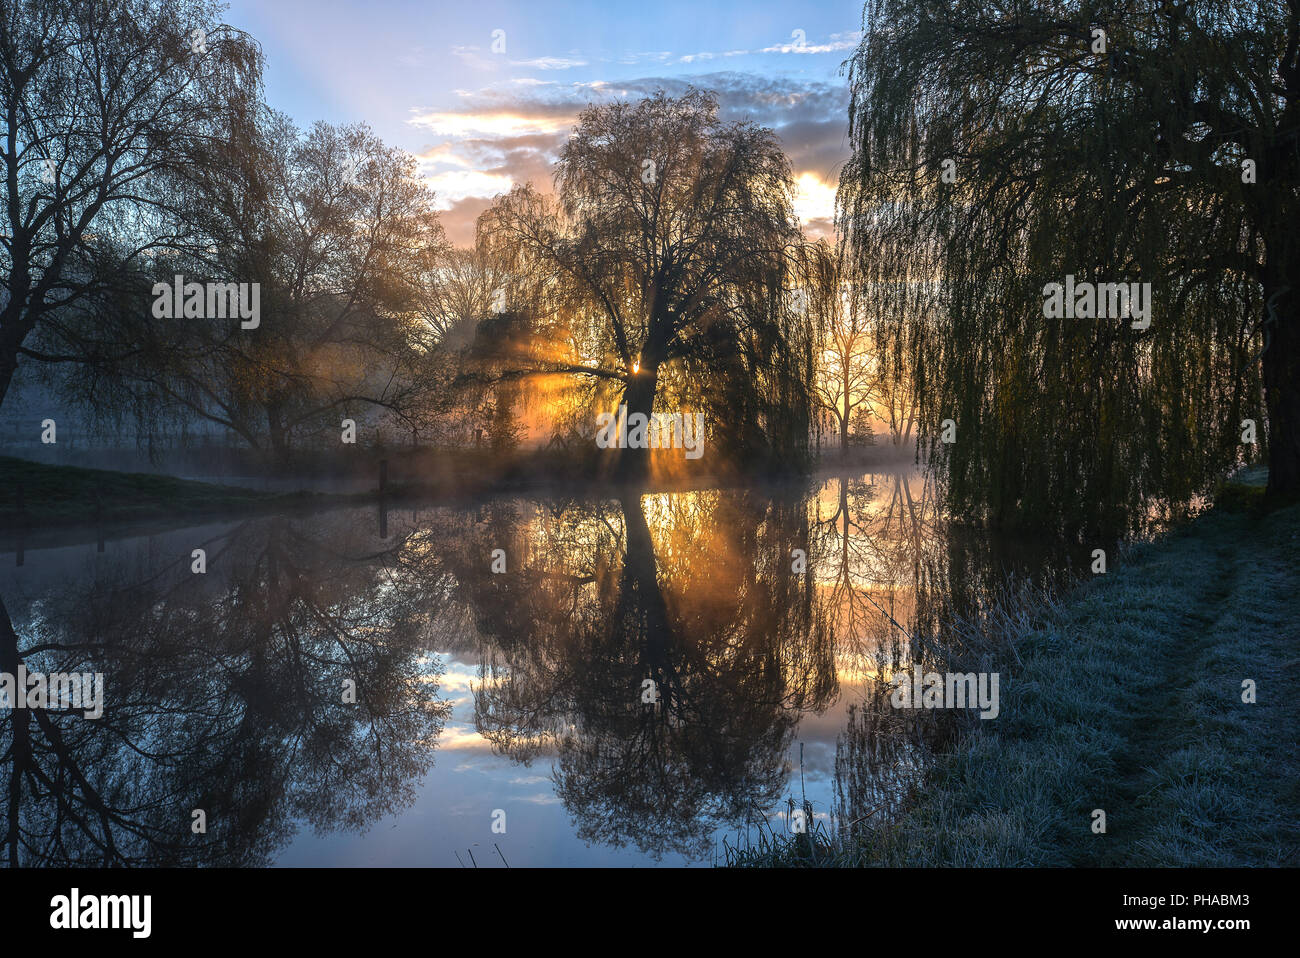 Mystical morning - Stock Image